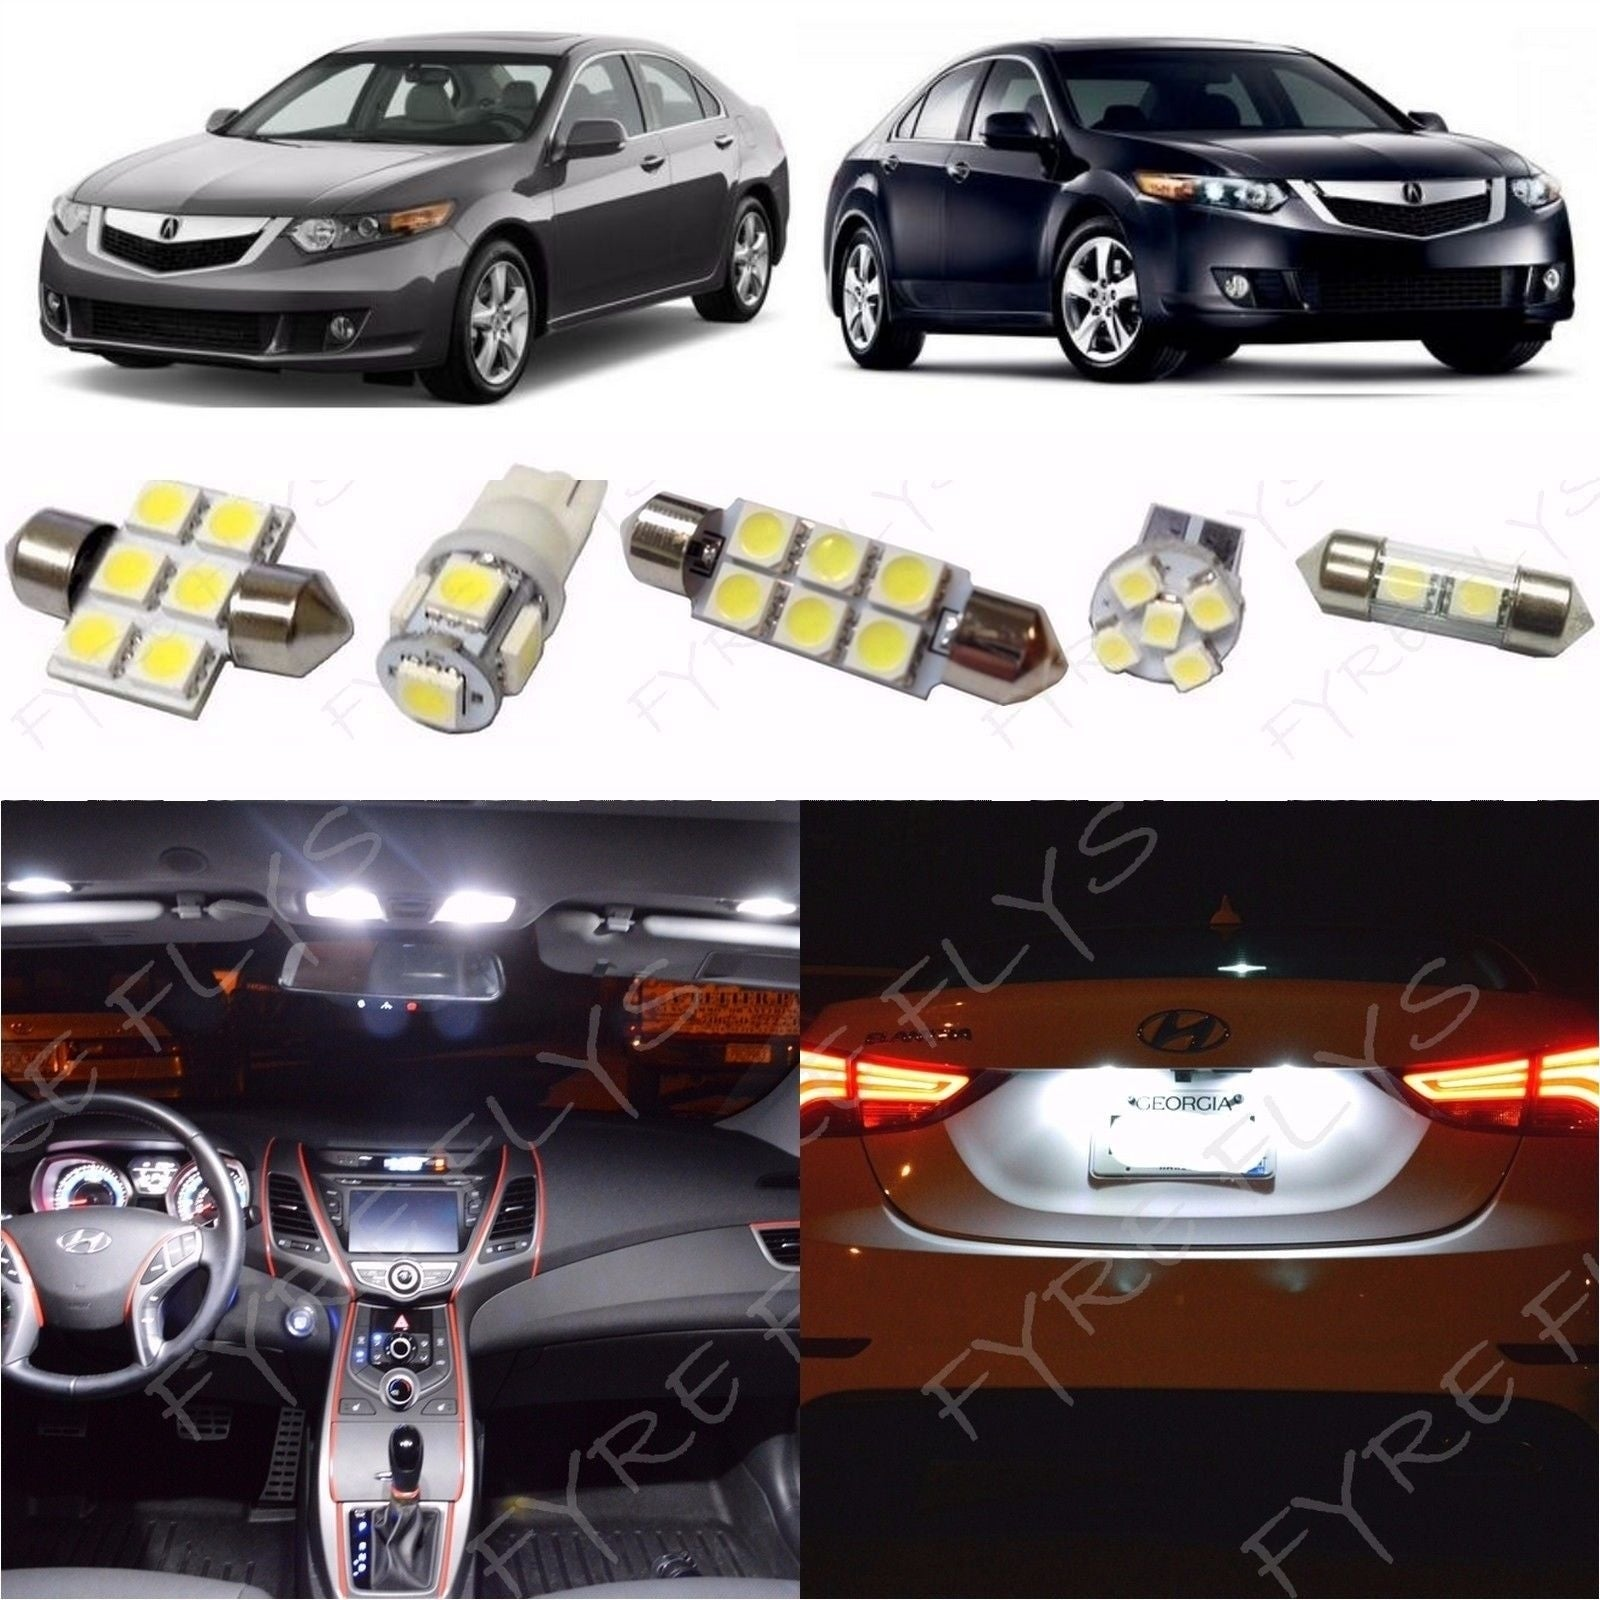 Complete LED Interior Light Kit For 2009-2014 Acura TSX